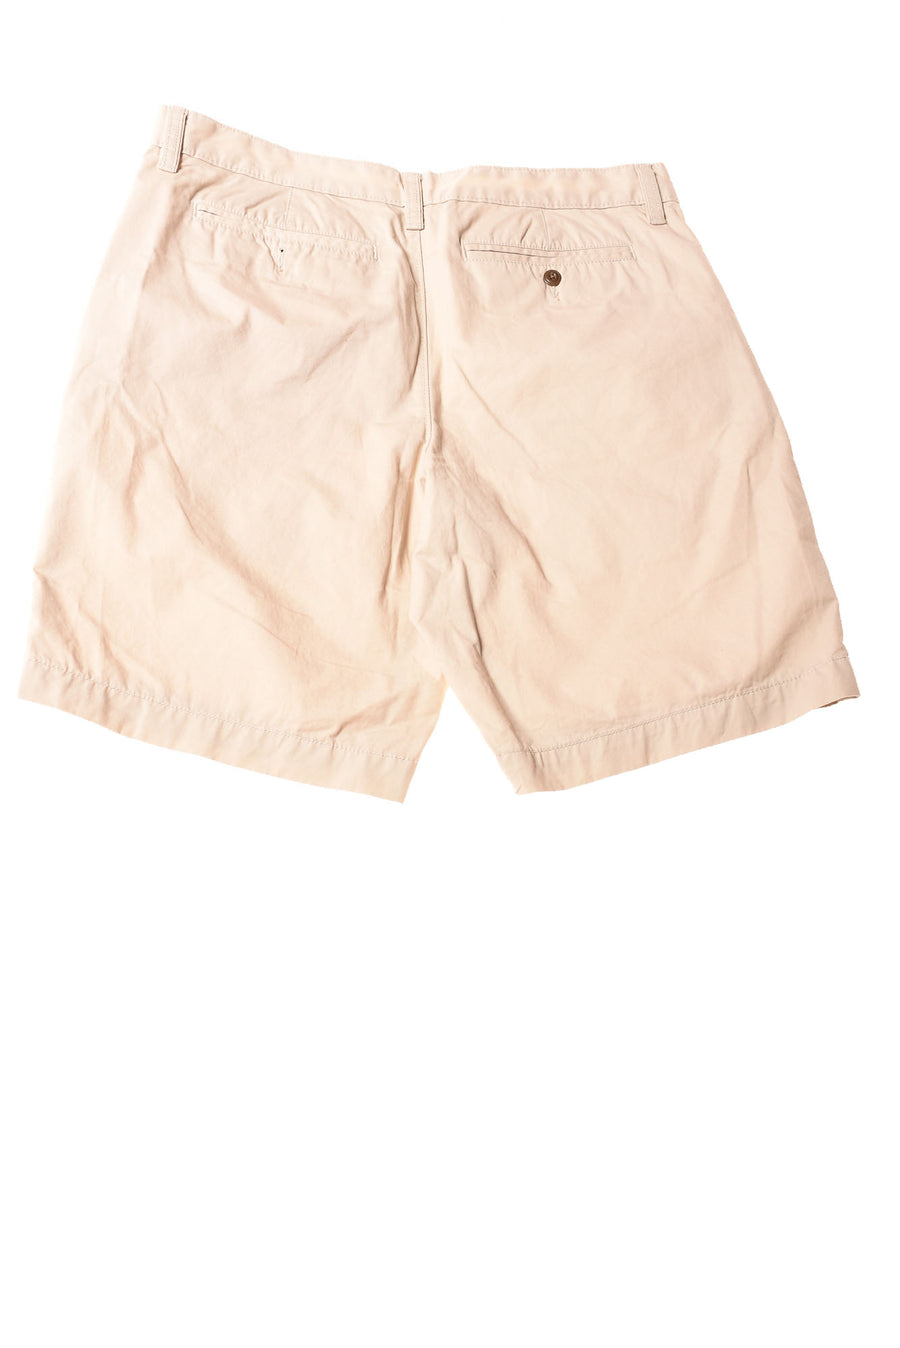 USED Sonoma Men's Shorts 36 Tan